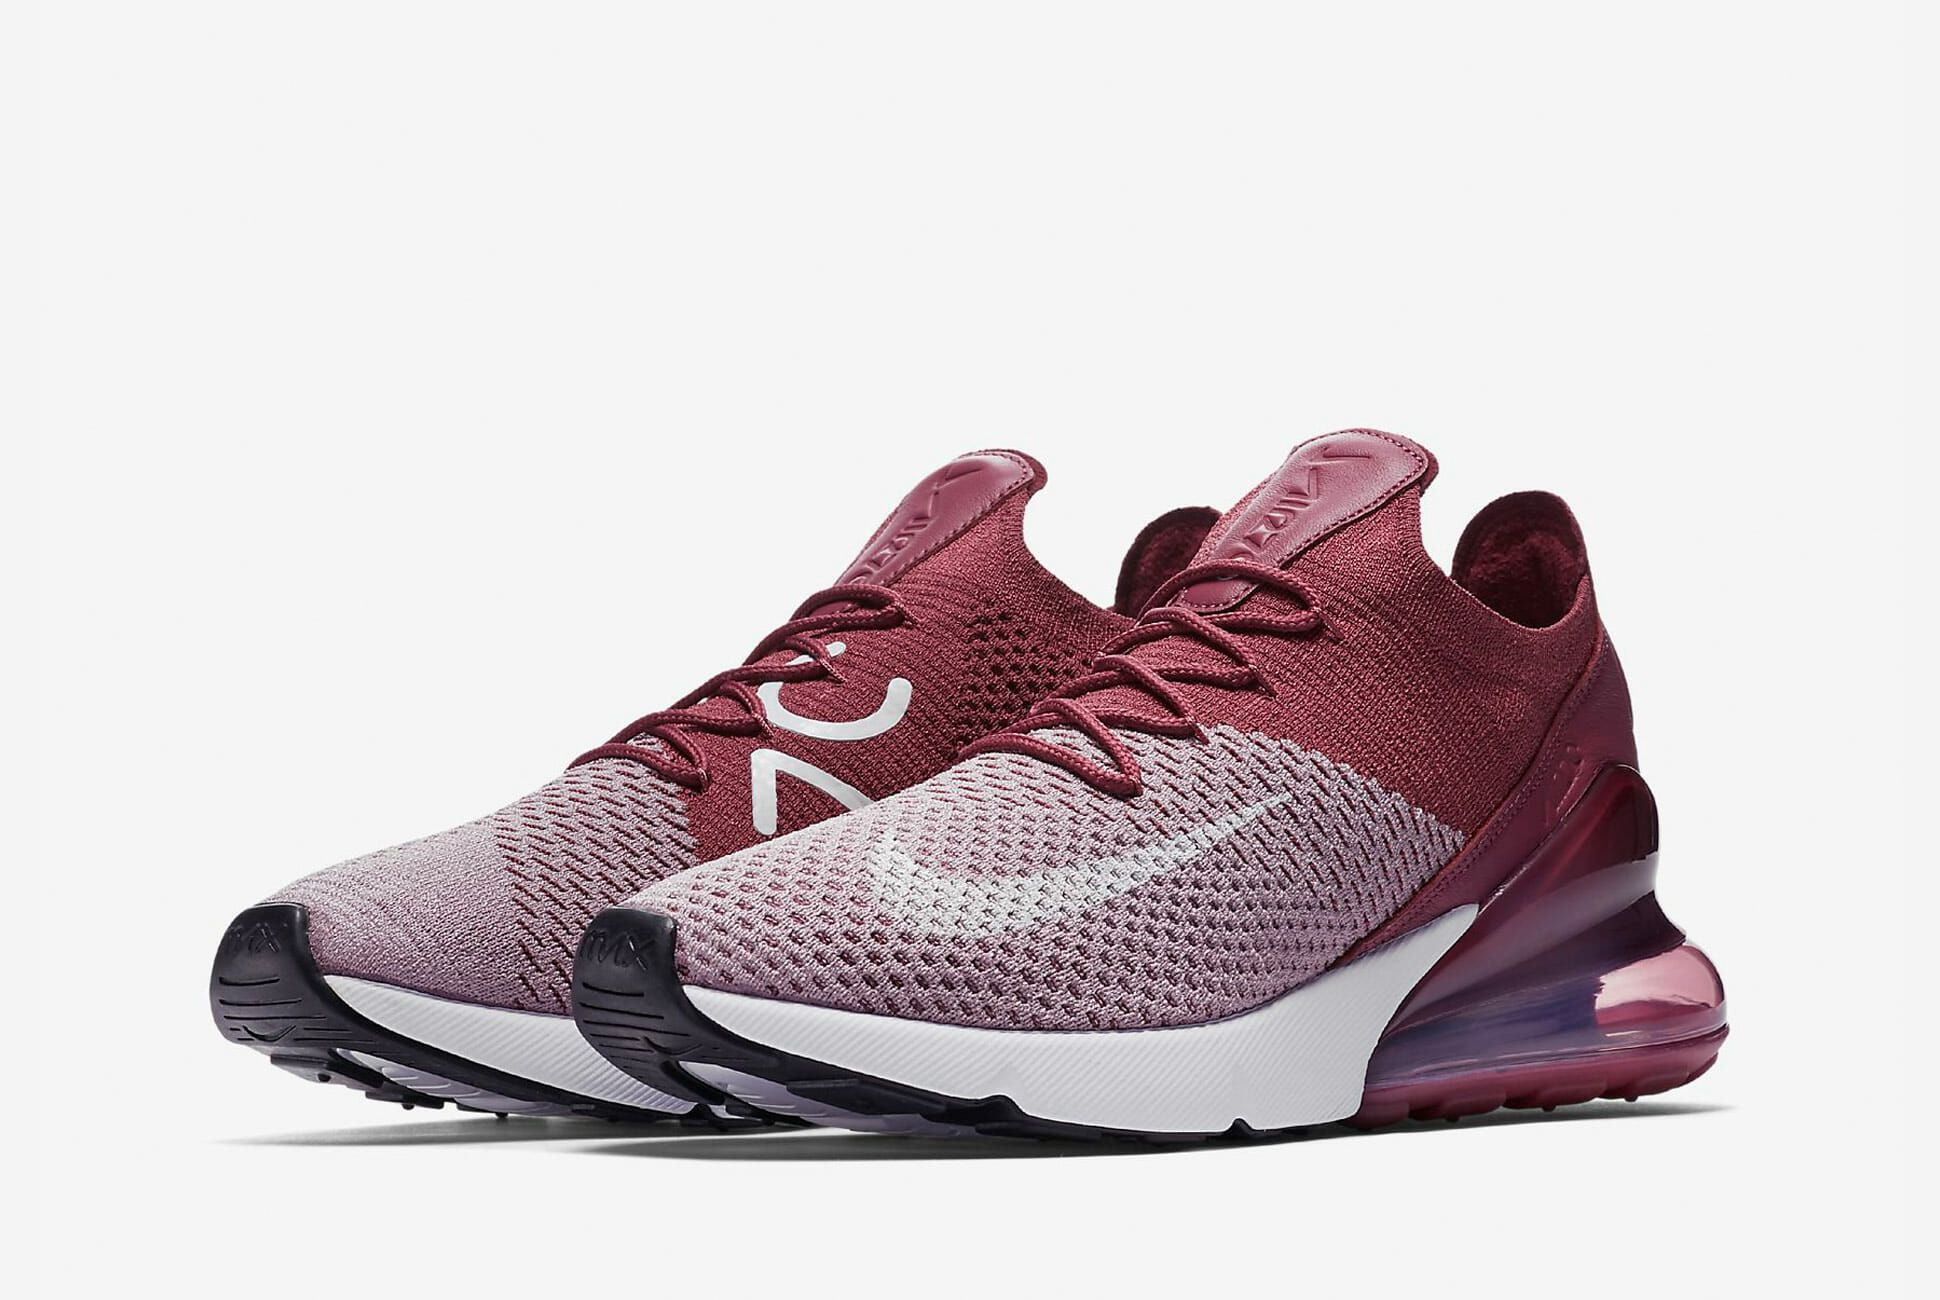 Nike's Newest Sneaker Is on Fire, and These Just Released